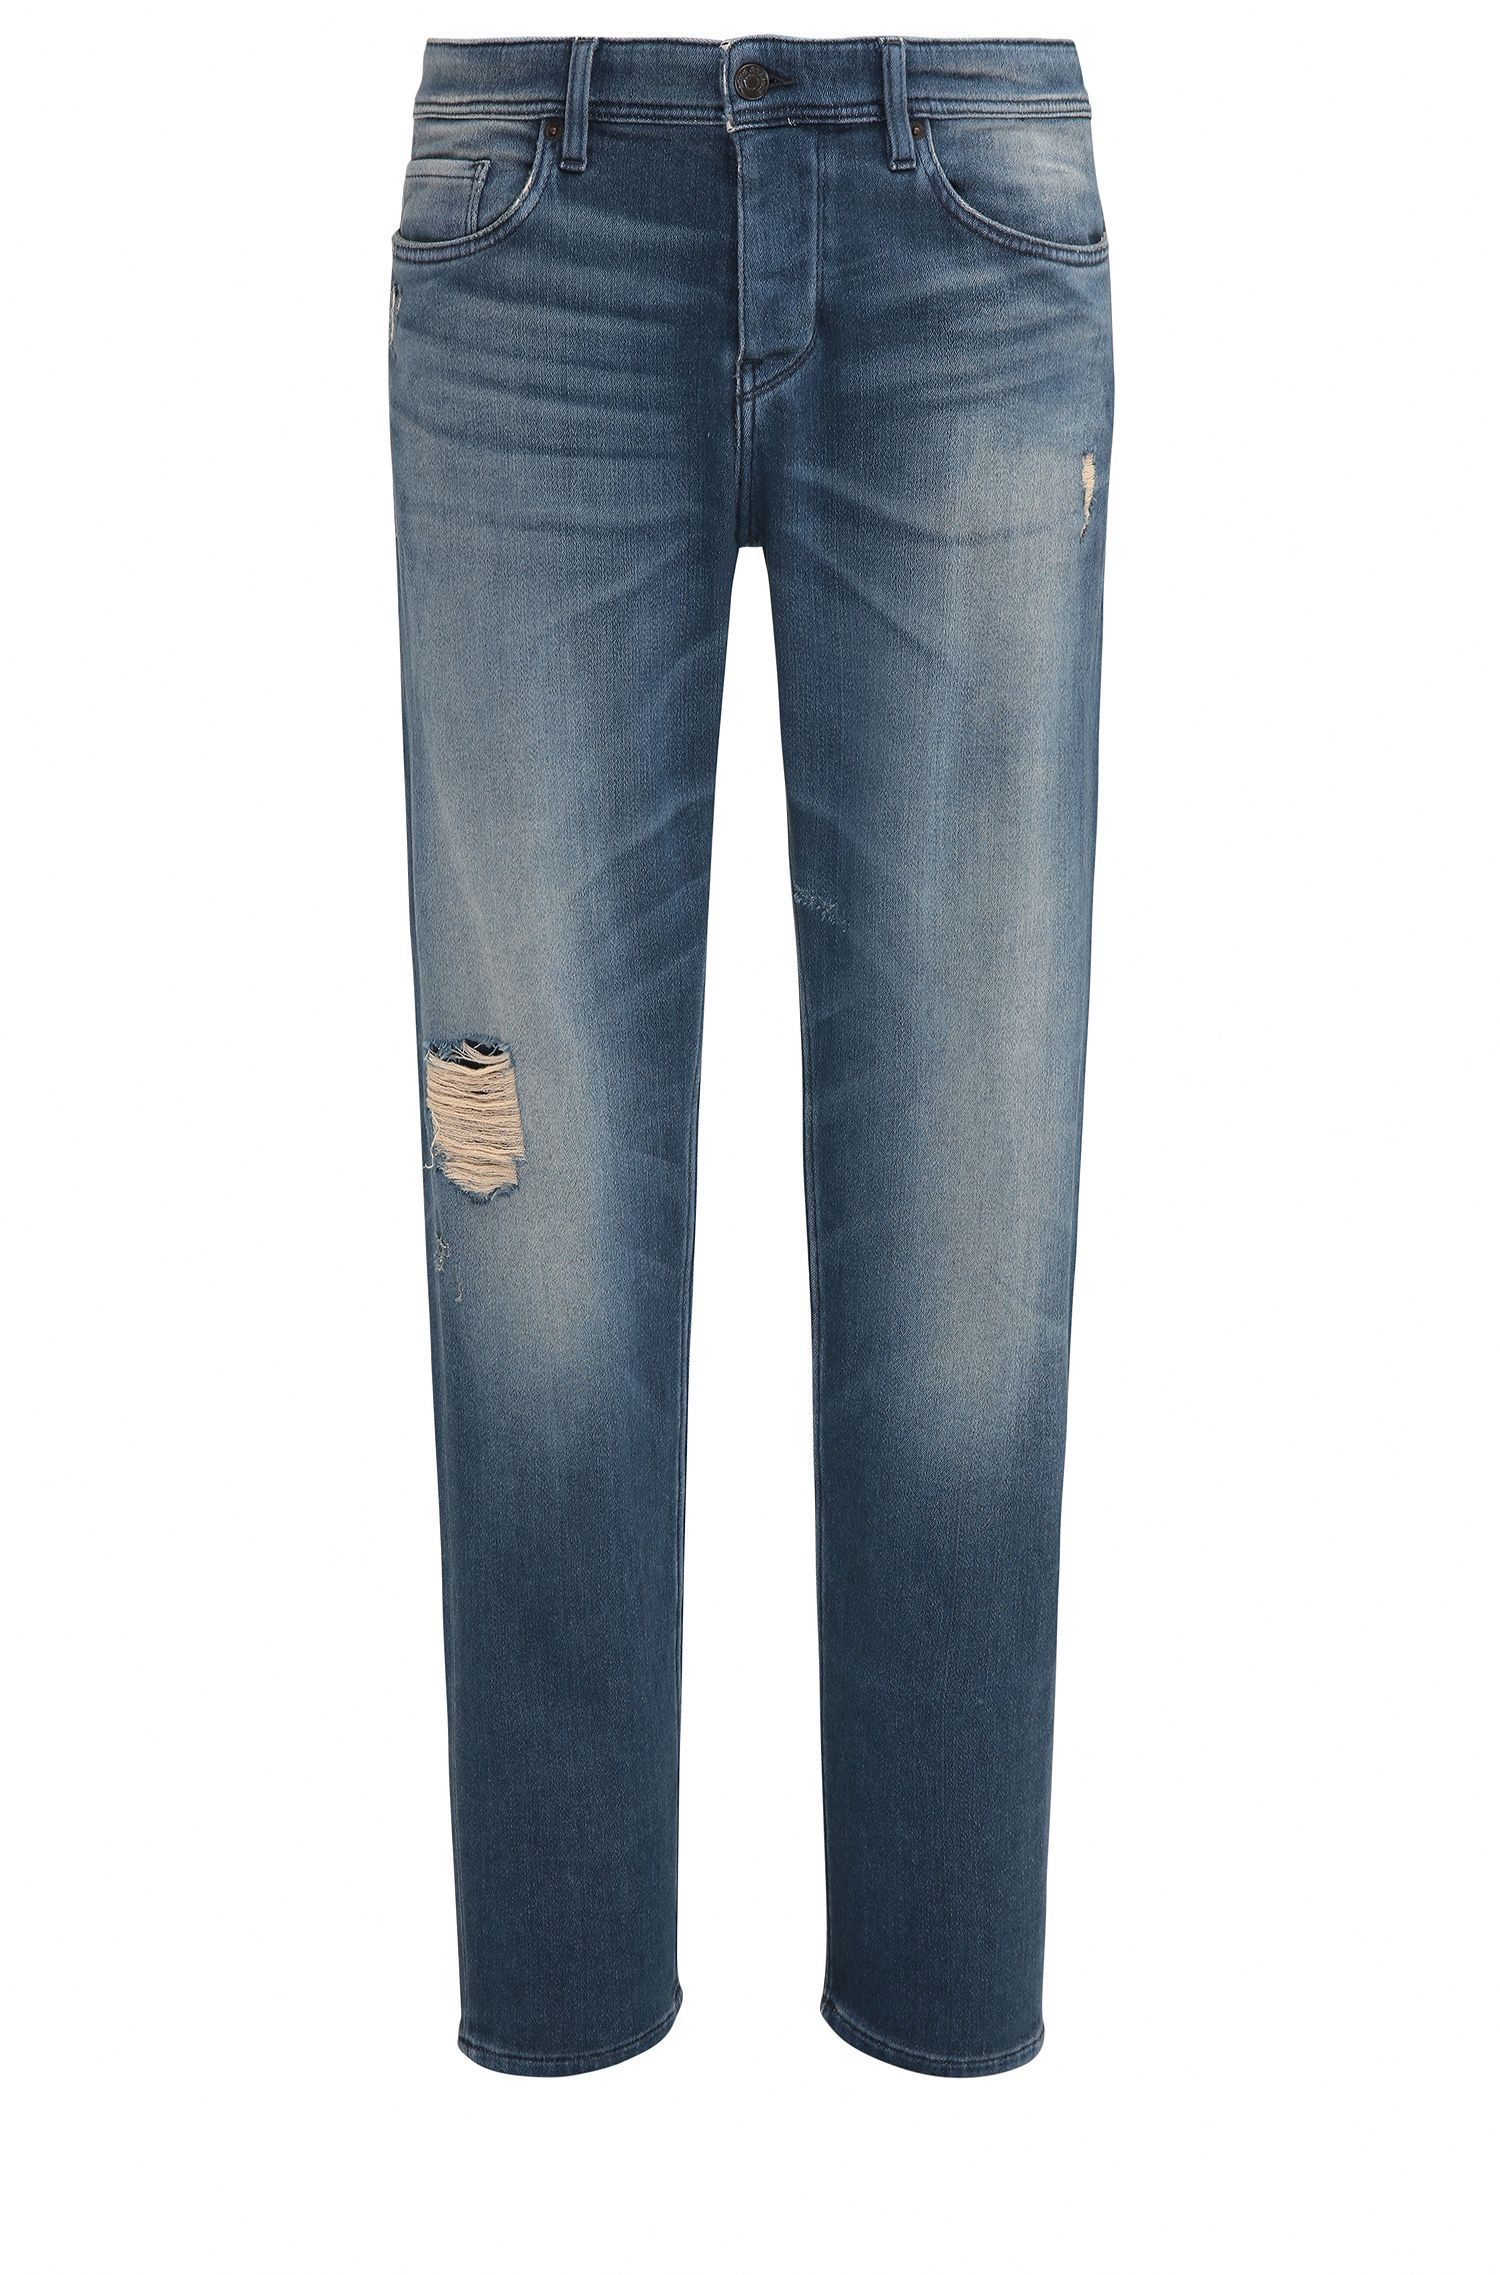 Jeans Tapered Fit en coton stretch confortable